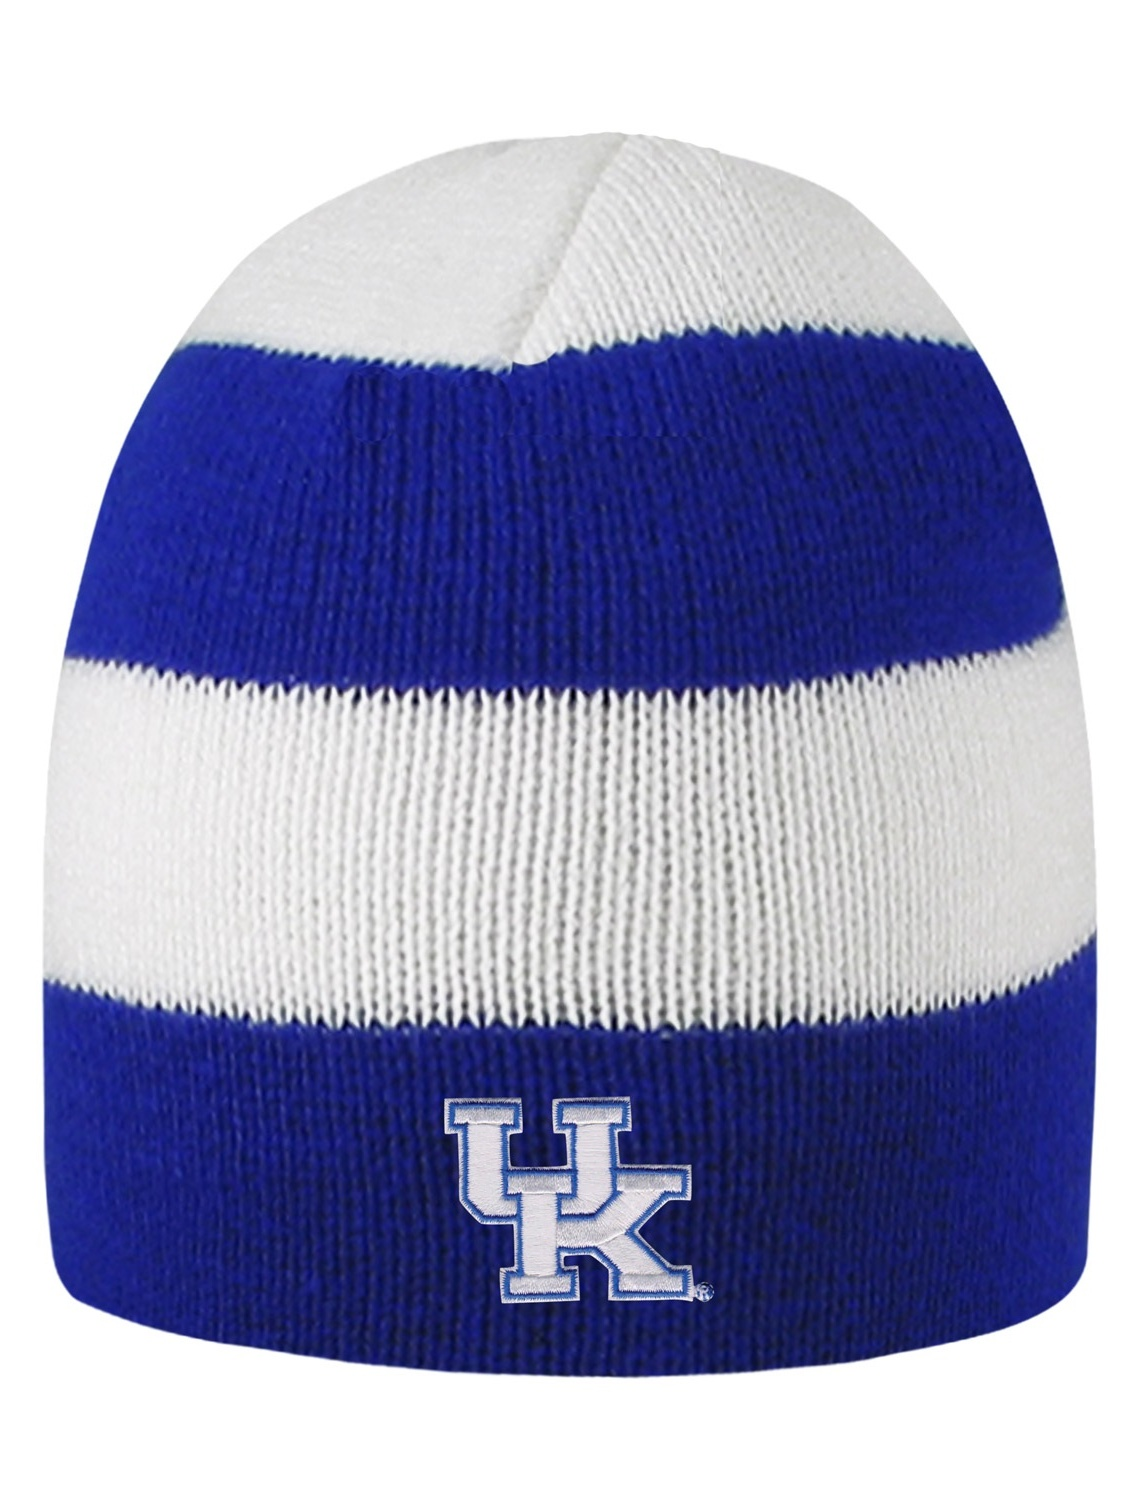 University of Kentucky Rugby Striped Knit Beanie by